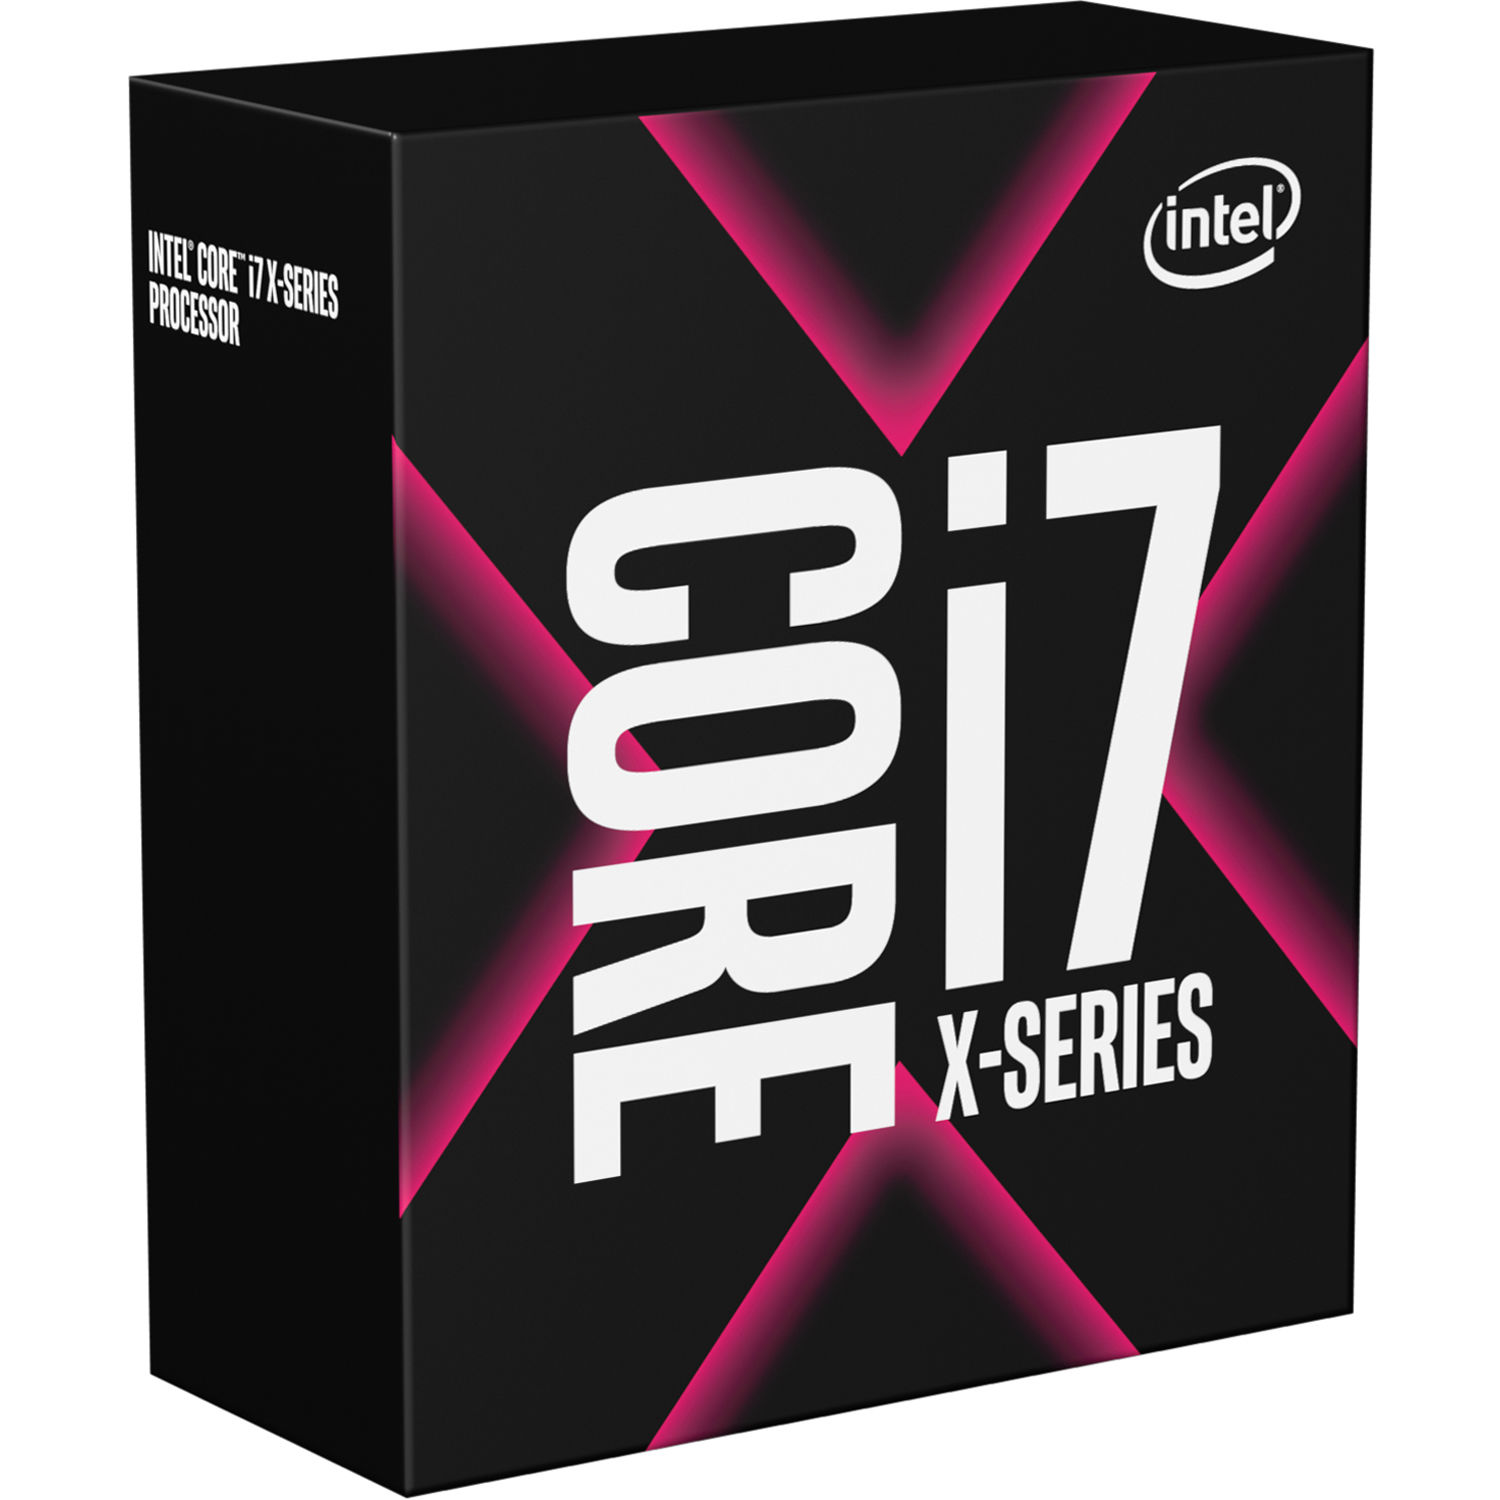 Intel Core i7-9800X 3.80Ghz 8 core, No Fan Unlocked LGA2066 X se